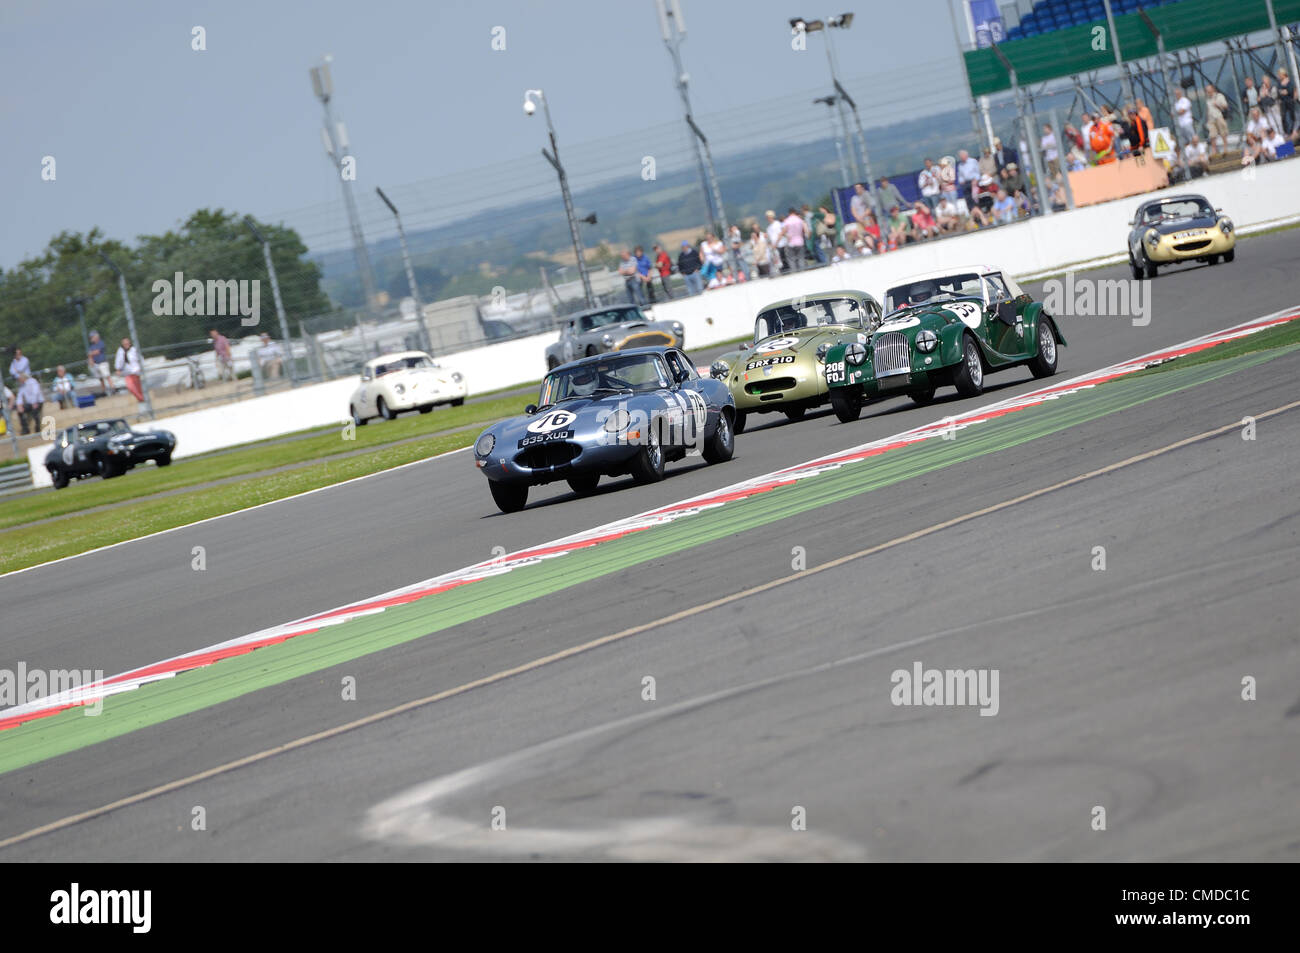 22nd July 2012, Silverstone, UK.  The cars battle for position during the Royal Automobile Club Tourist Trophy for - Stock Image